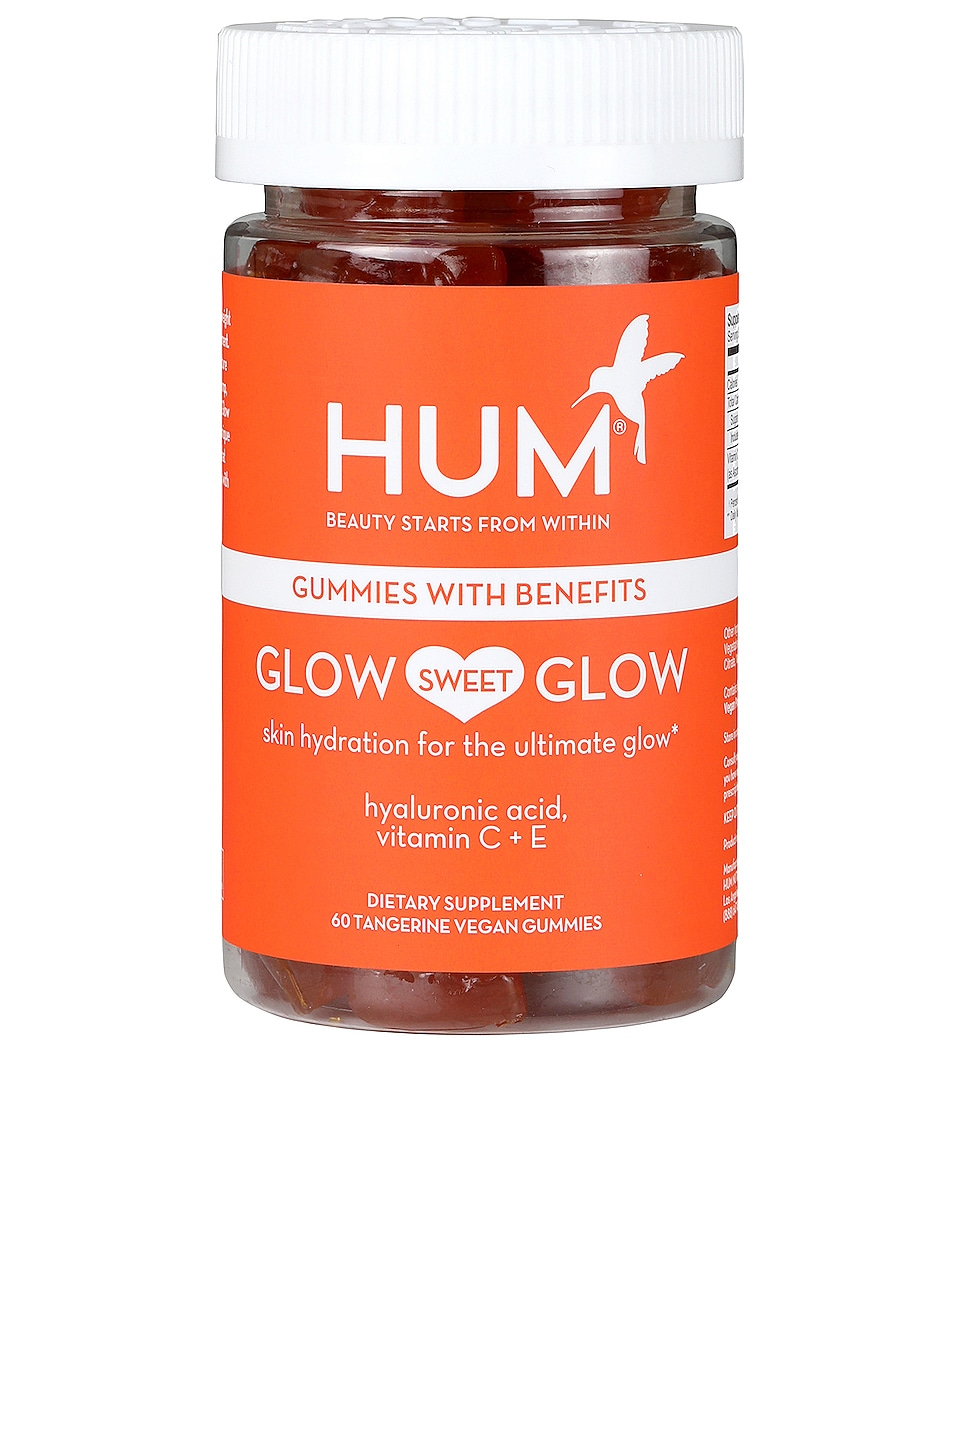 HUM Nutrition Glow Sweet Glow Skin Hydration Vegan Gummies